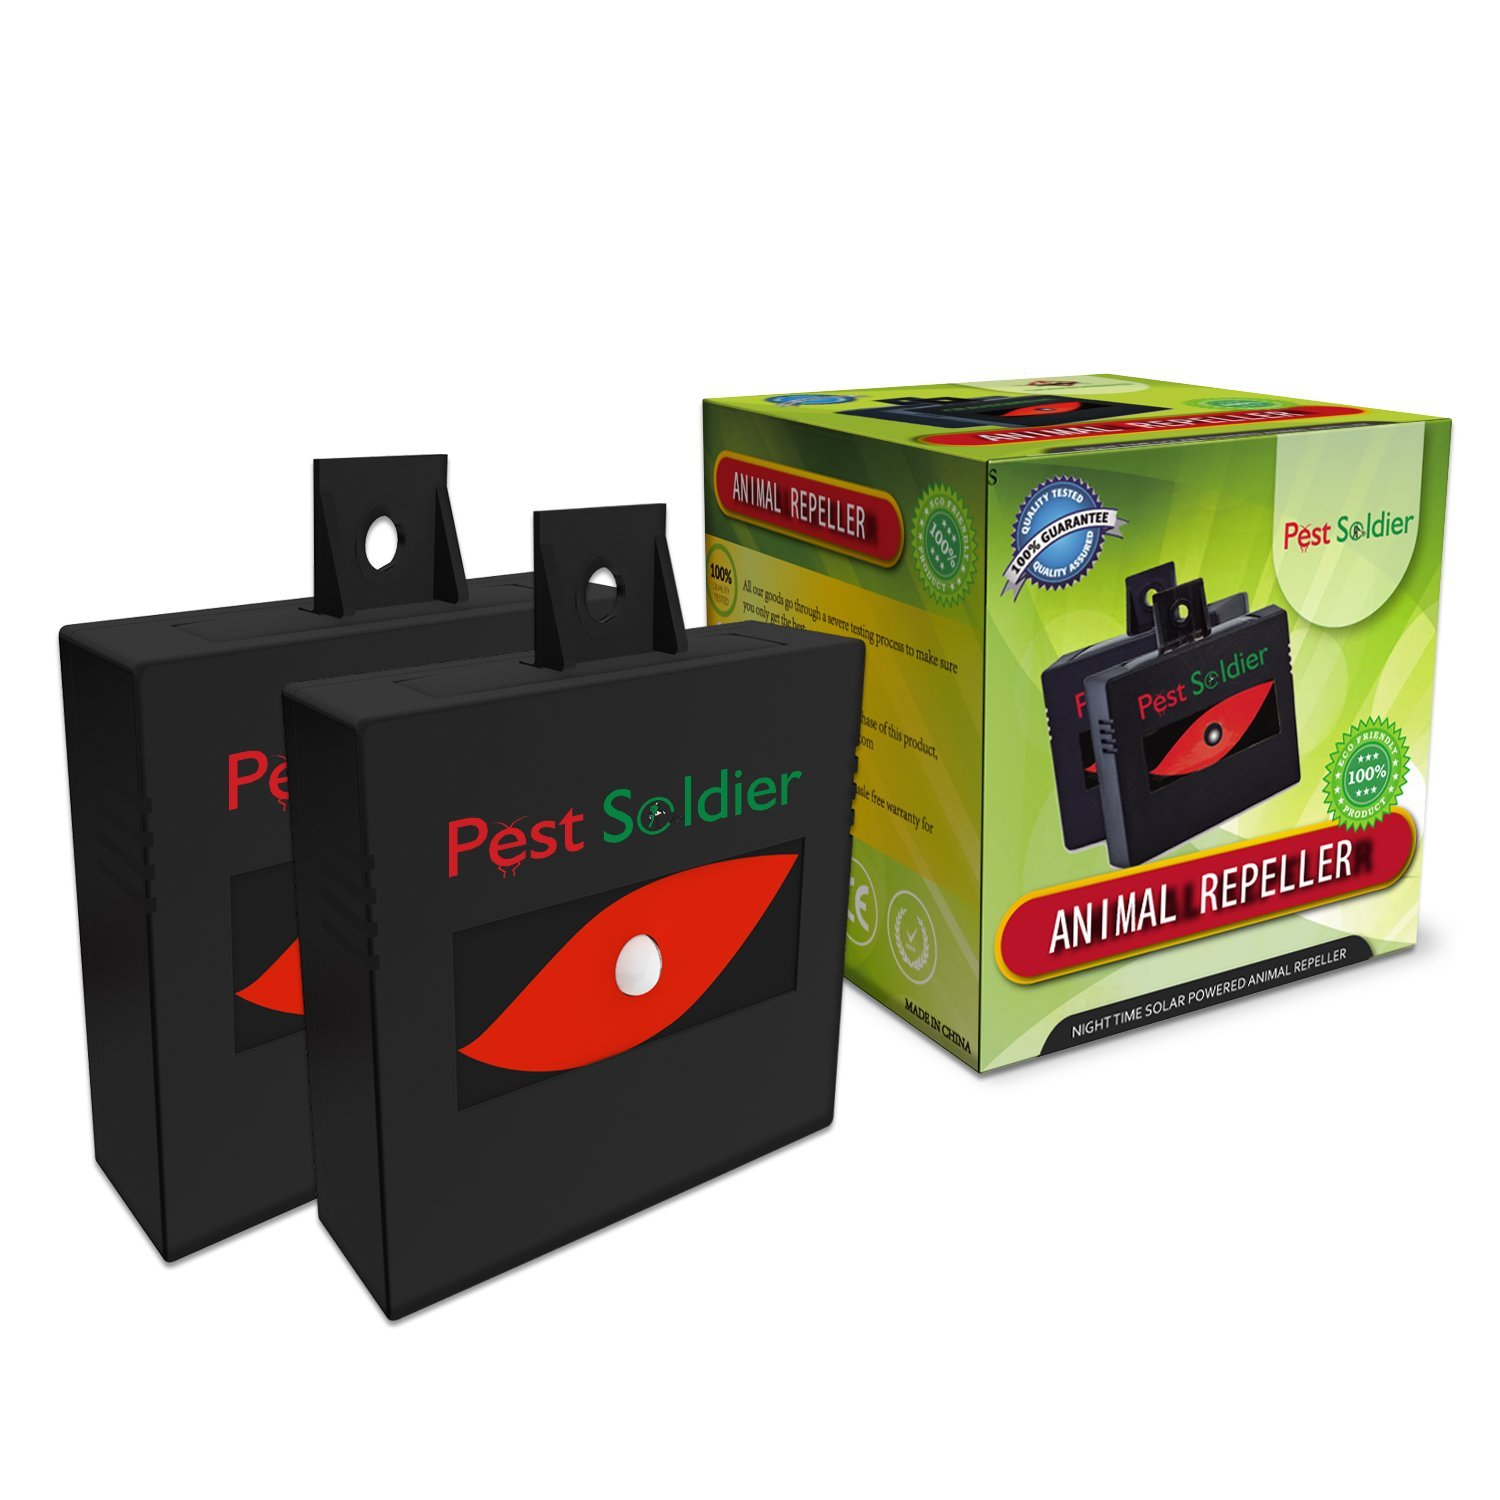 Pest Soldier Solar Powered Animal Repeller